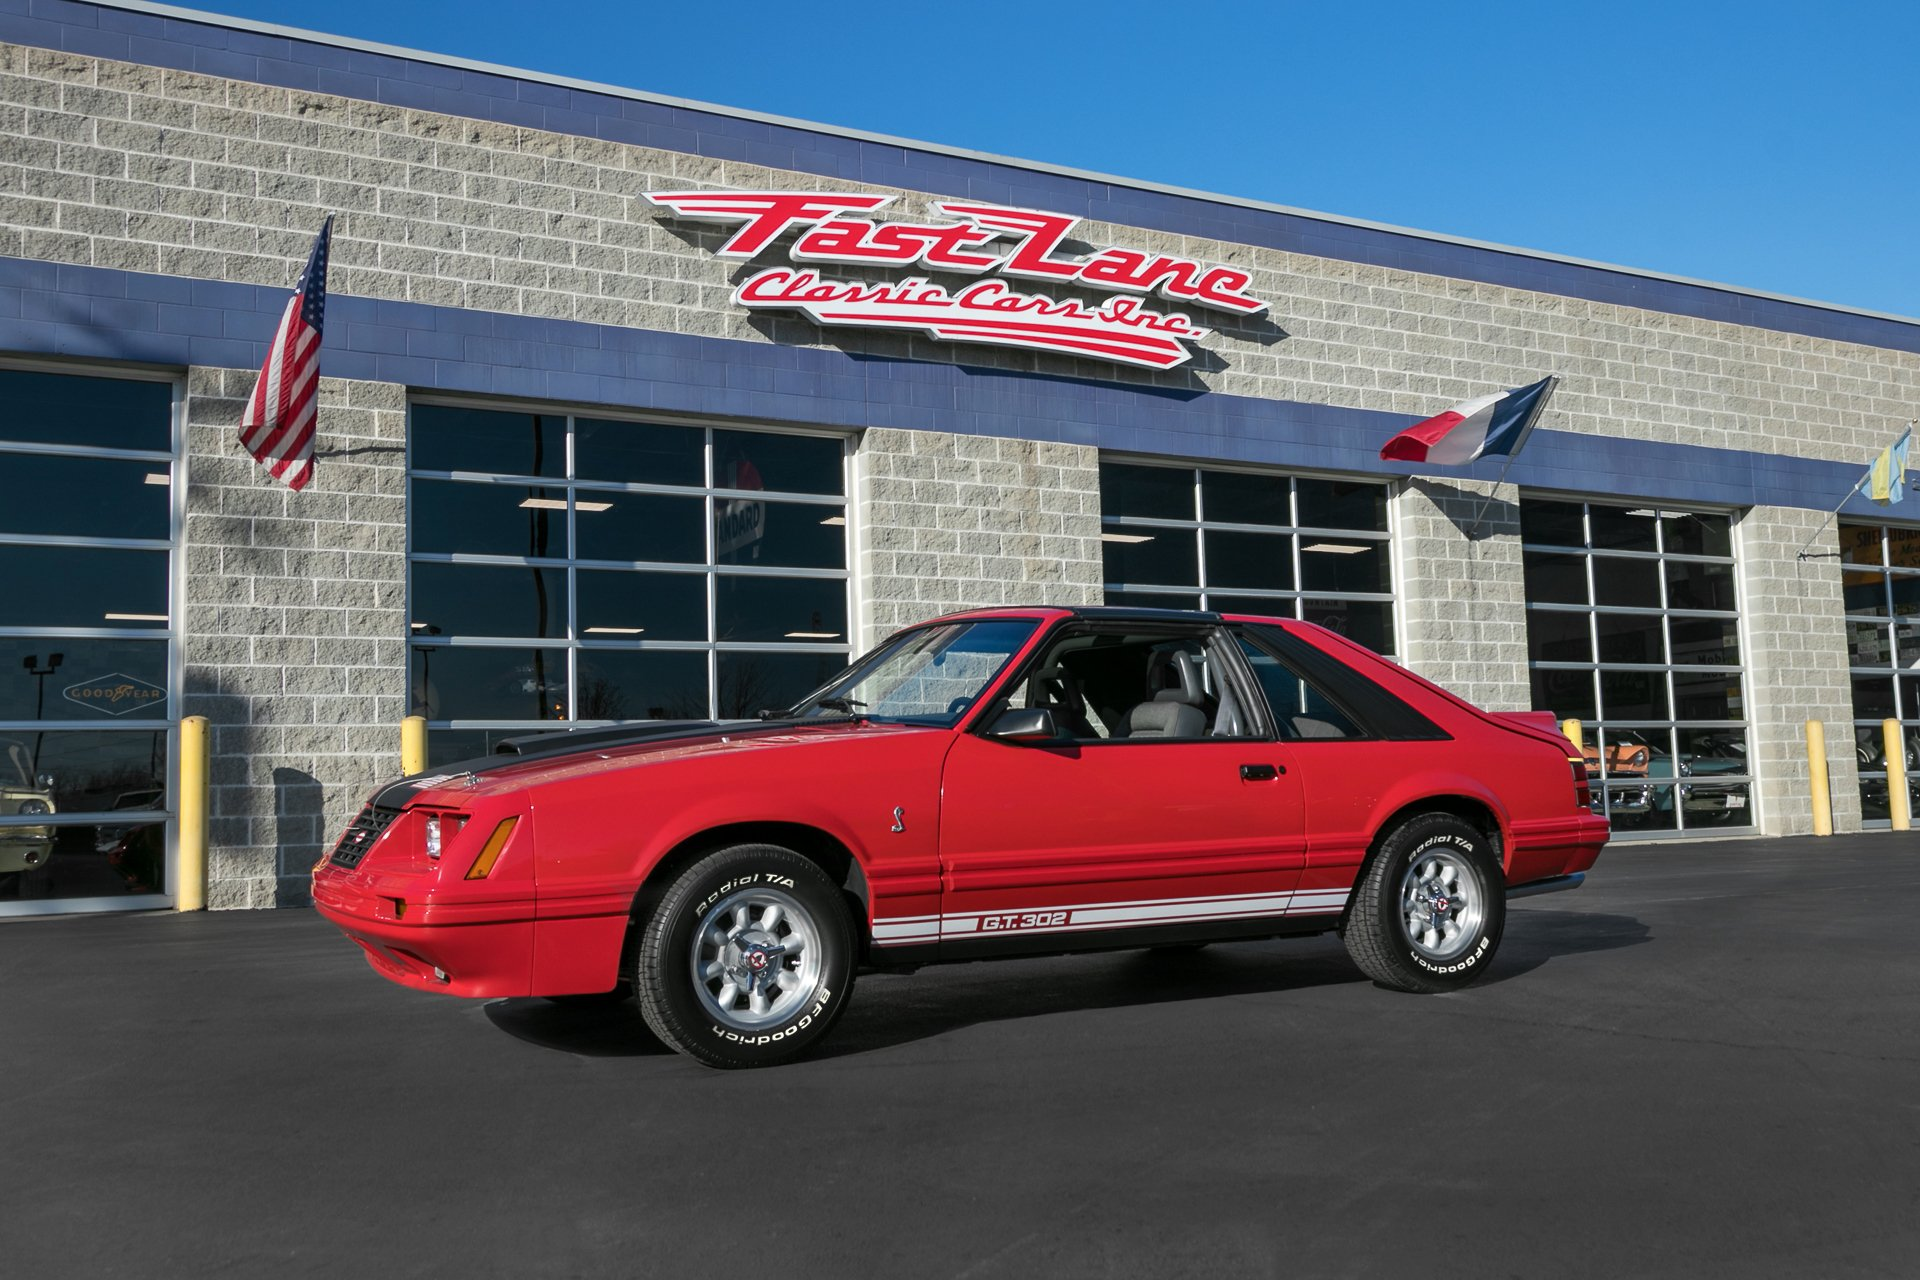 1984 ford mustang predator fast lane classic cars